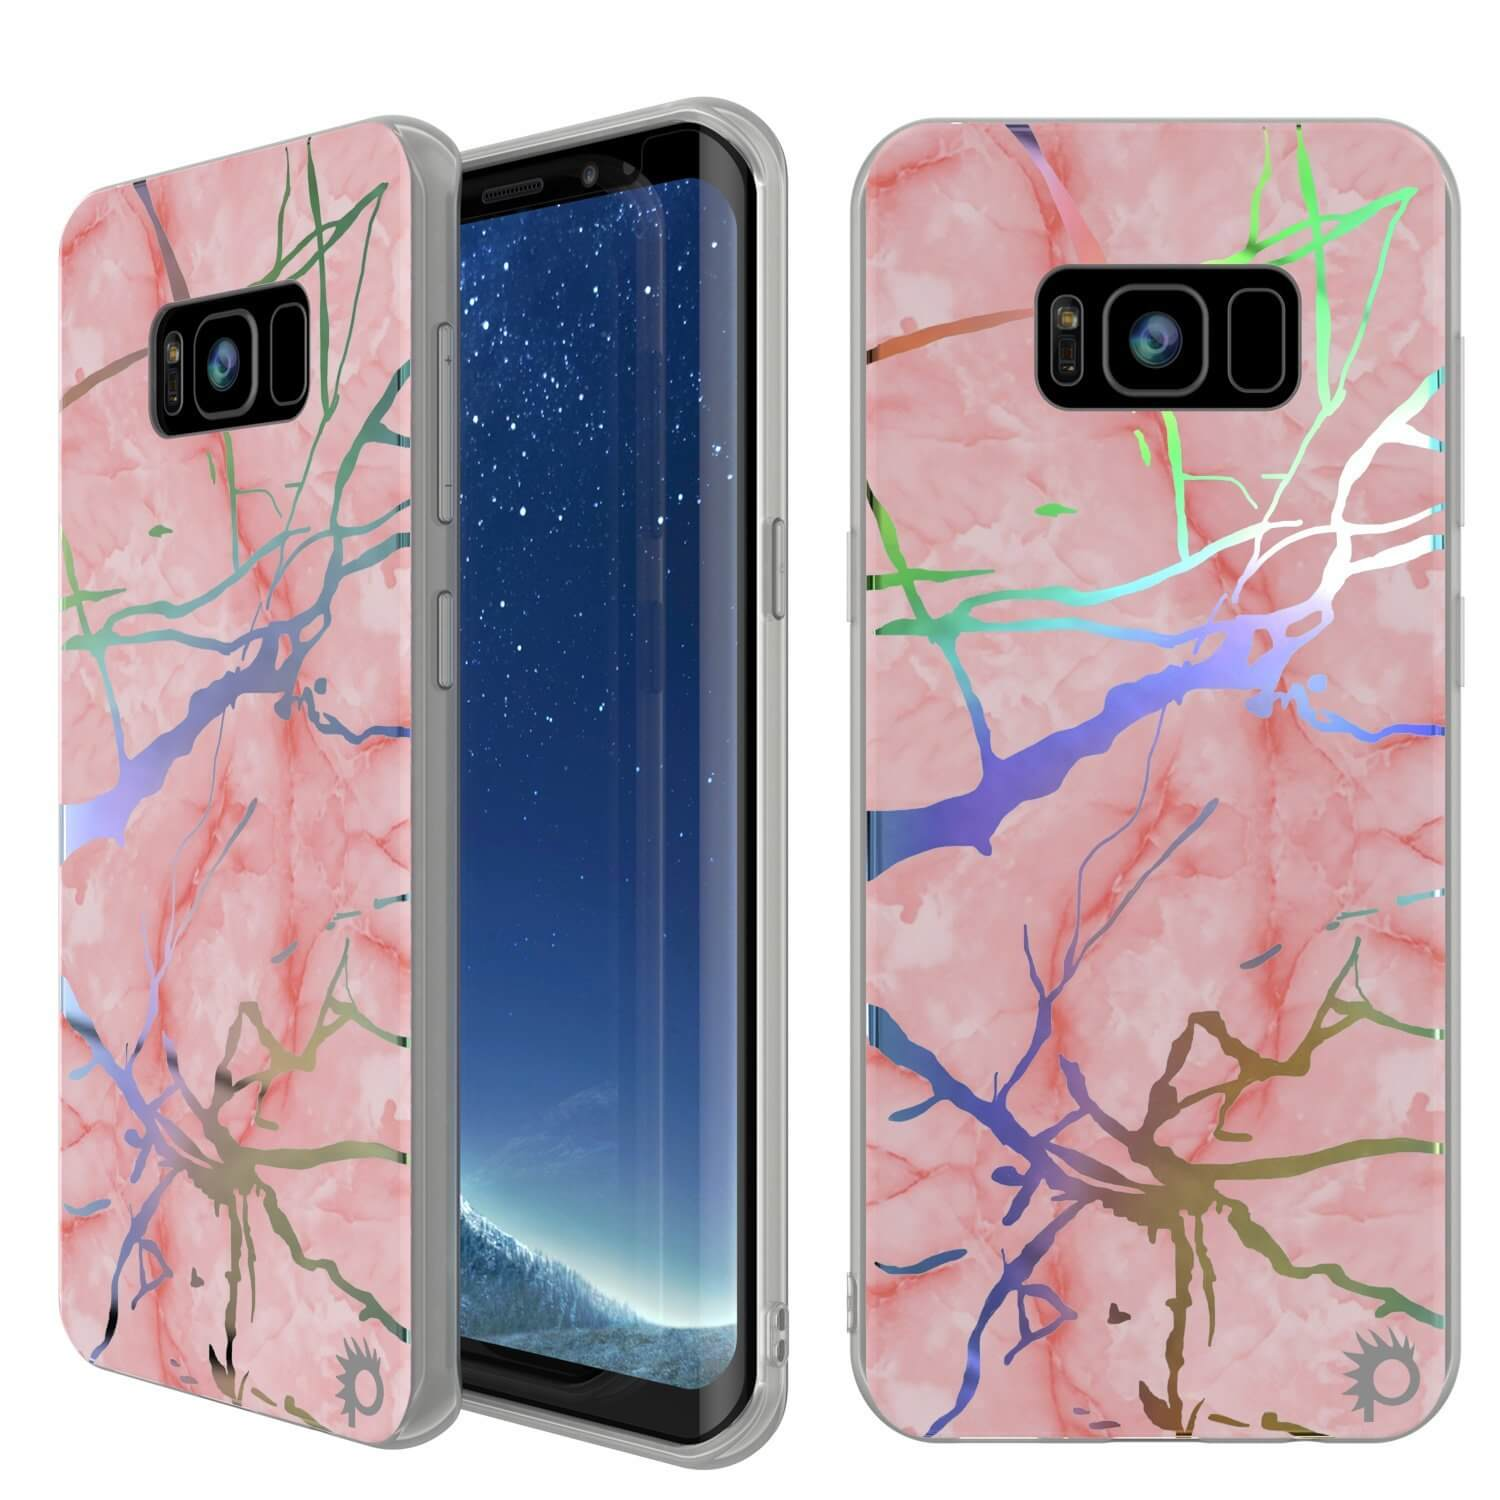 Punkcase Galaxy S8+ PLUS Marble Case, Protective Full Body Cover W/PunkShield Screen Protector (Rose Mirage)